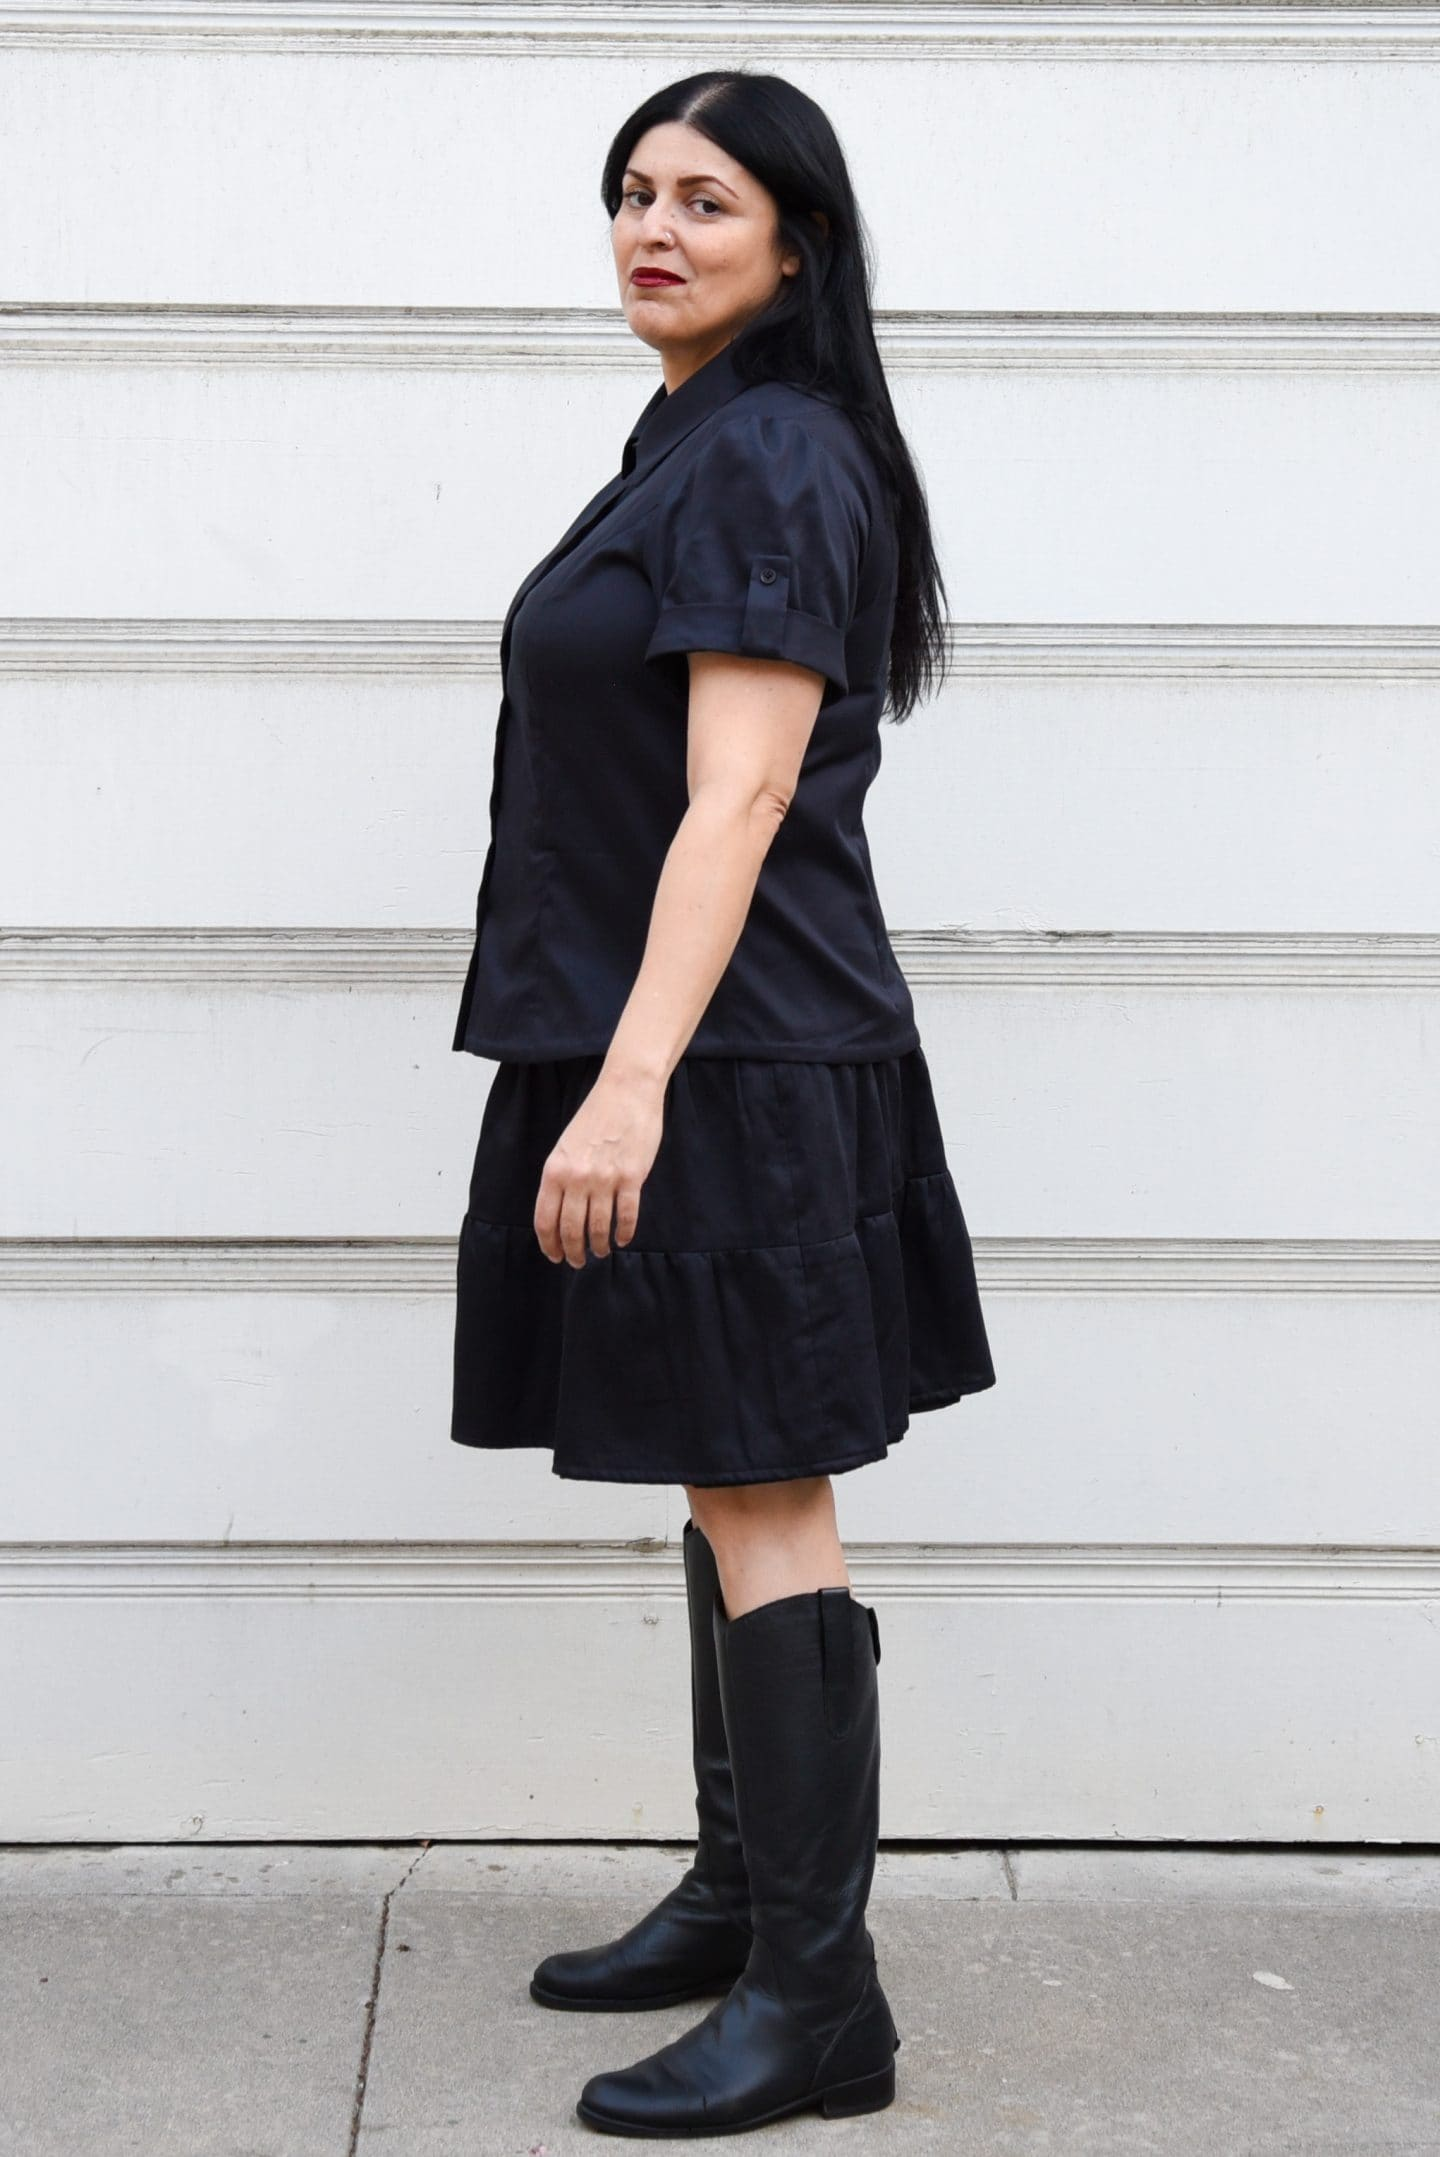 Image of a woman with long black hair standing in front of a white background wearing a buttoned up black shirt, a black skirt, and black boots